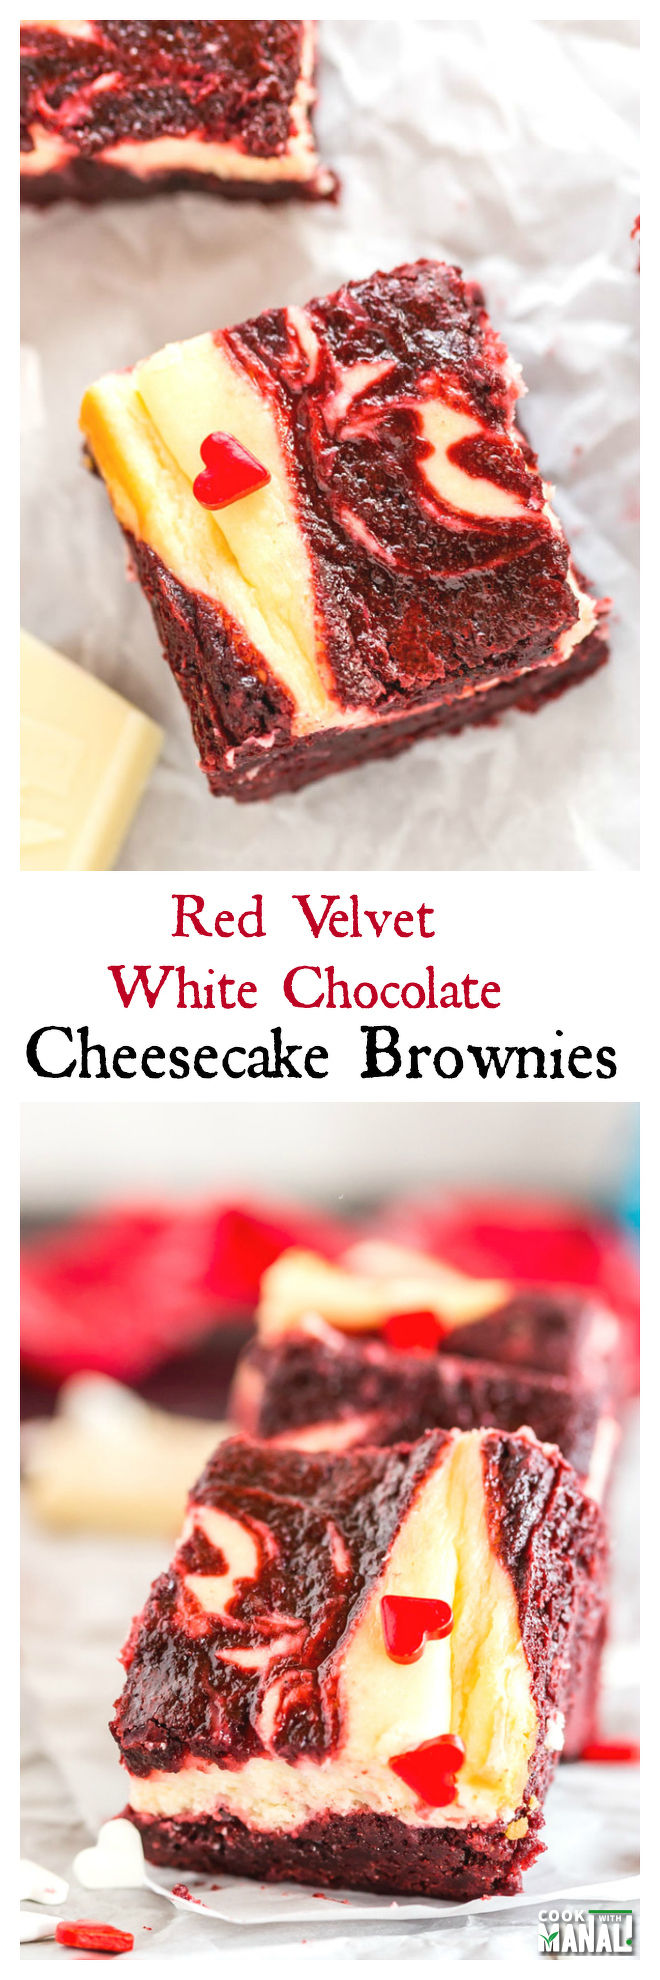 Red Velvet White Chocolate Cheesecake Brownies-Collage